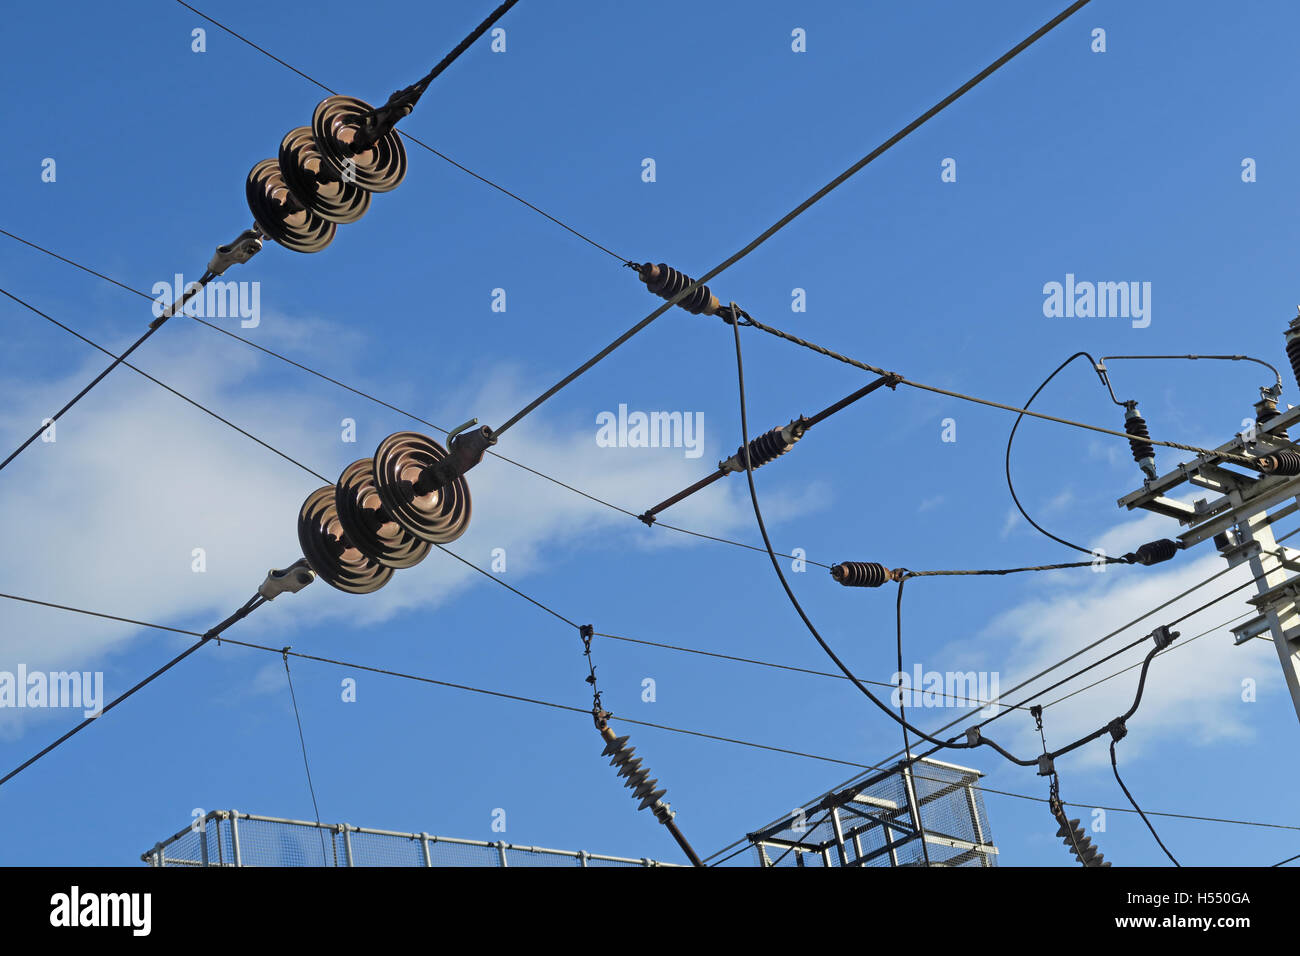 Overhead lines & insulators, electric train line,WCML,England,UK - Stock Image